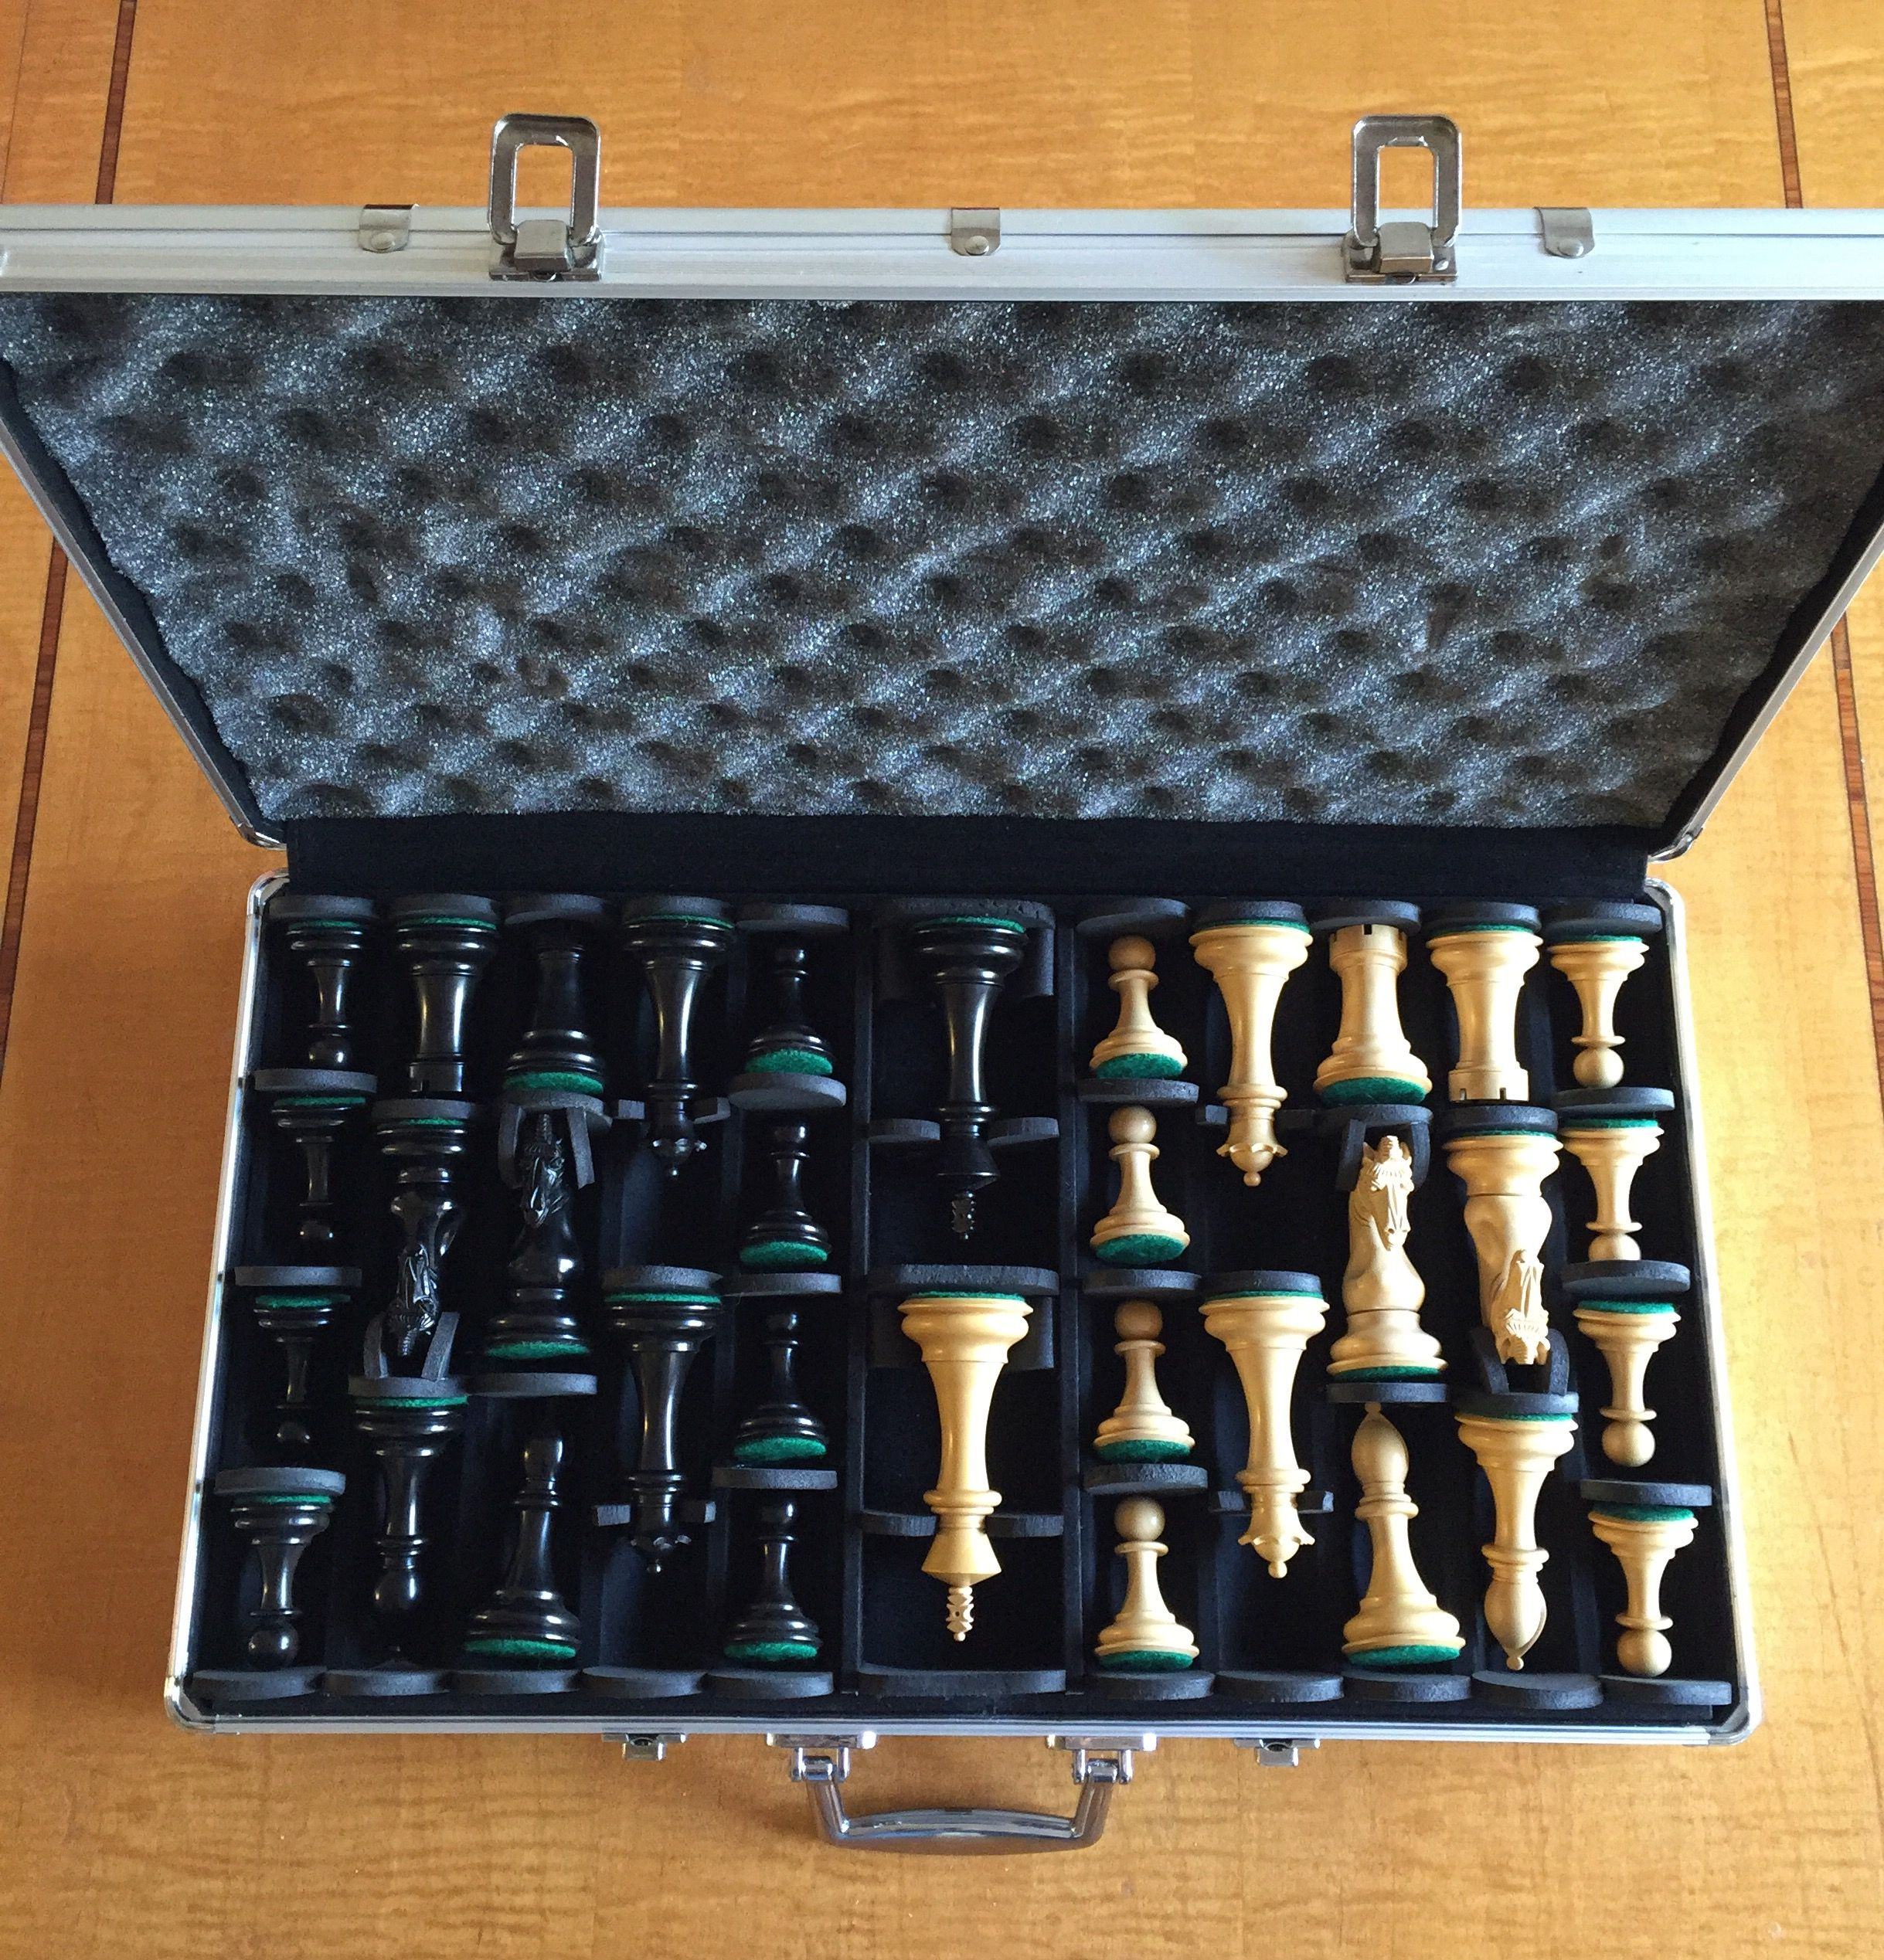 Diy Case For Chess Pieces Chess Forums Chess Com